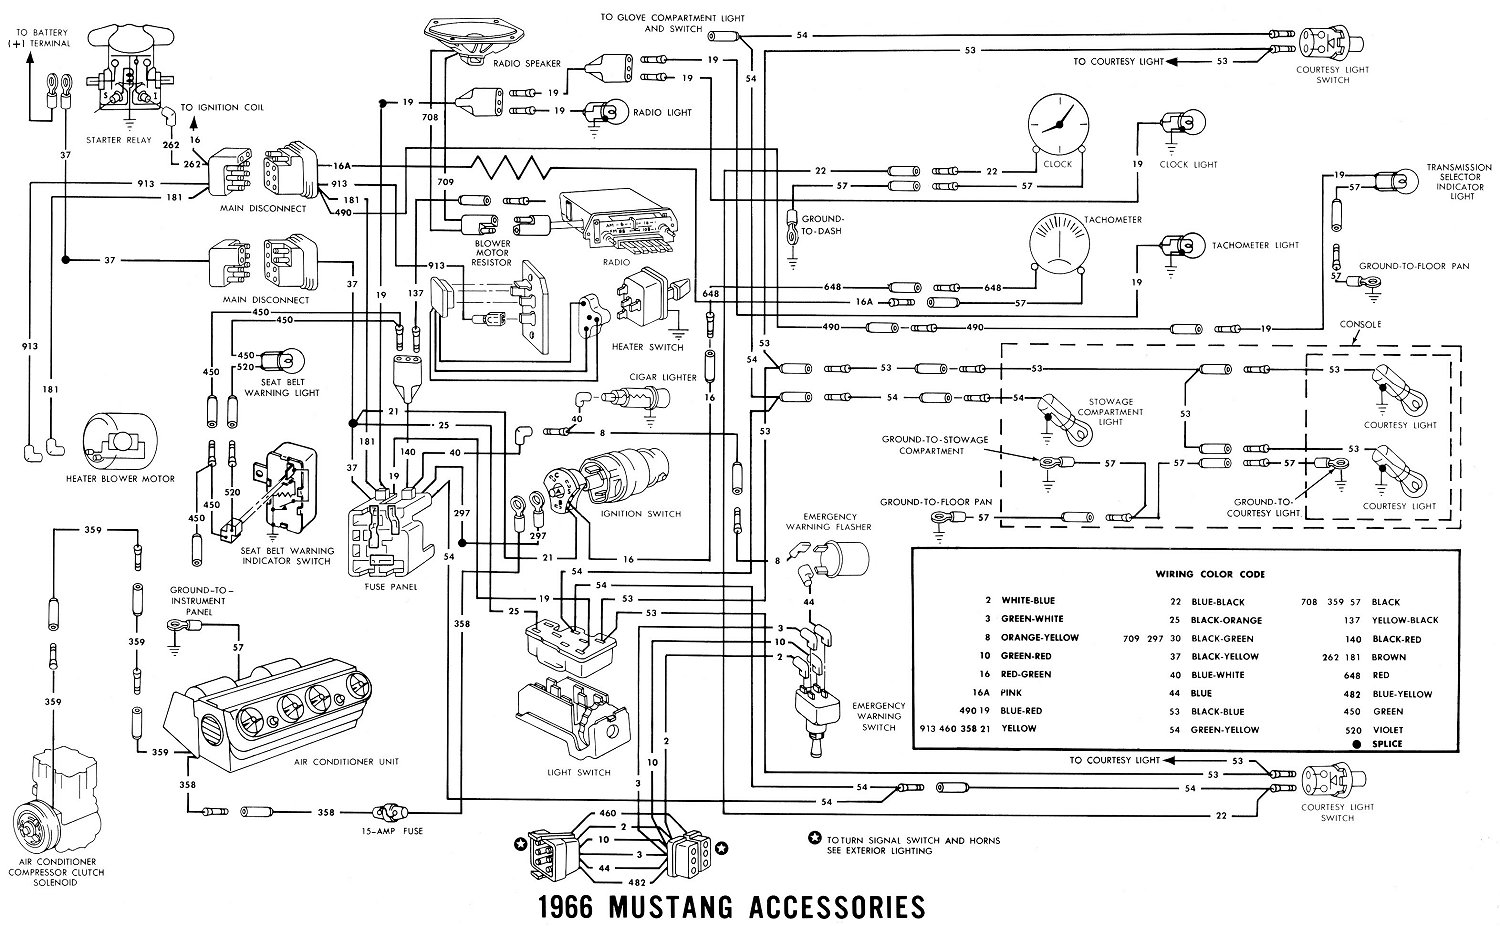 2012 Ford Mustang Wiring Diagram